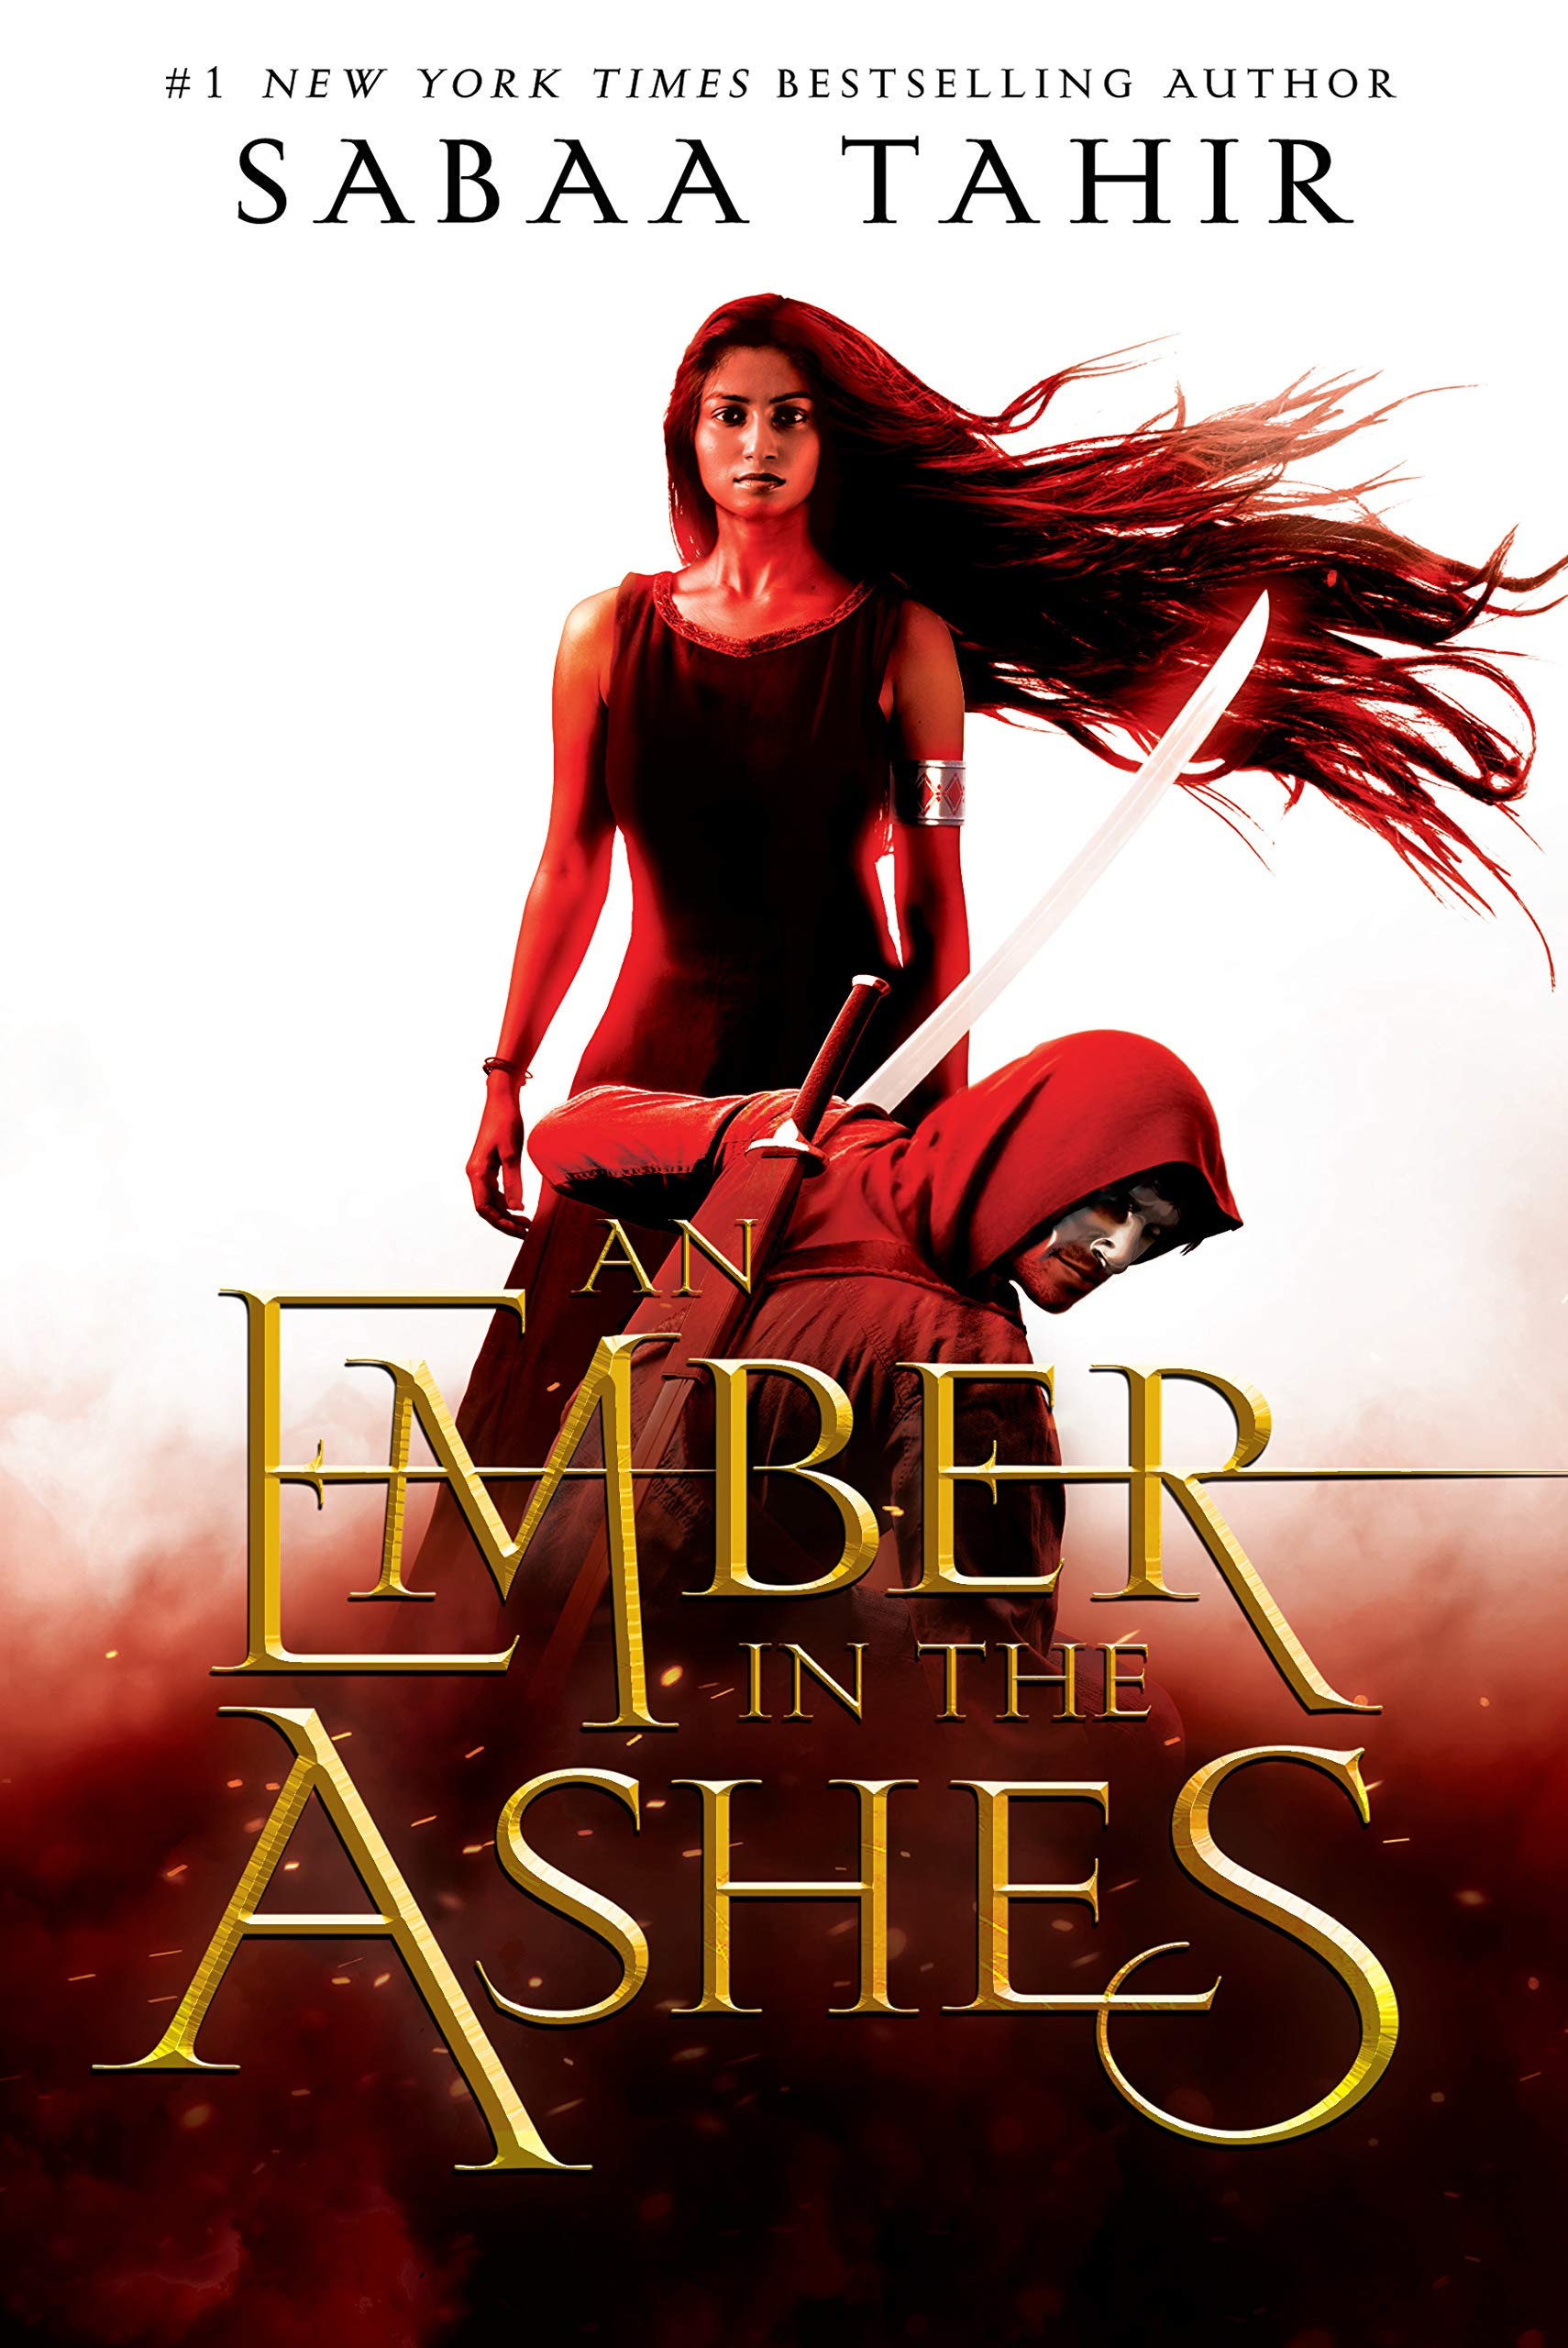 Amazon.com: An Ember in the Ashes (9781595148049): Tahir, Sabaa: Books